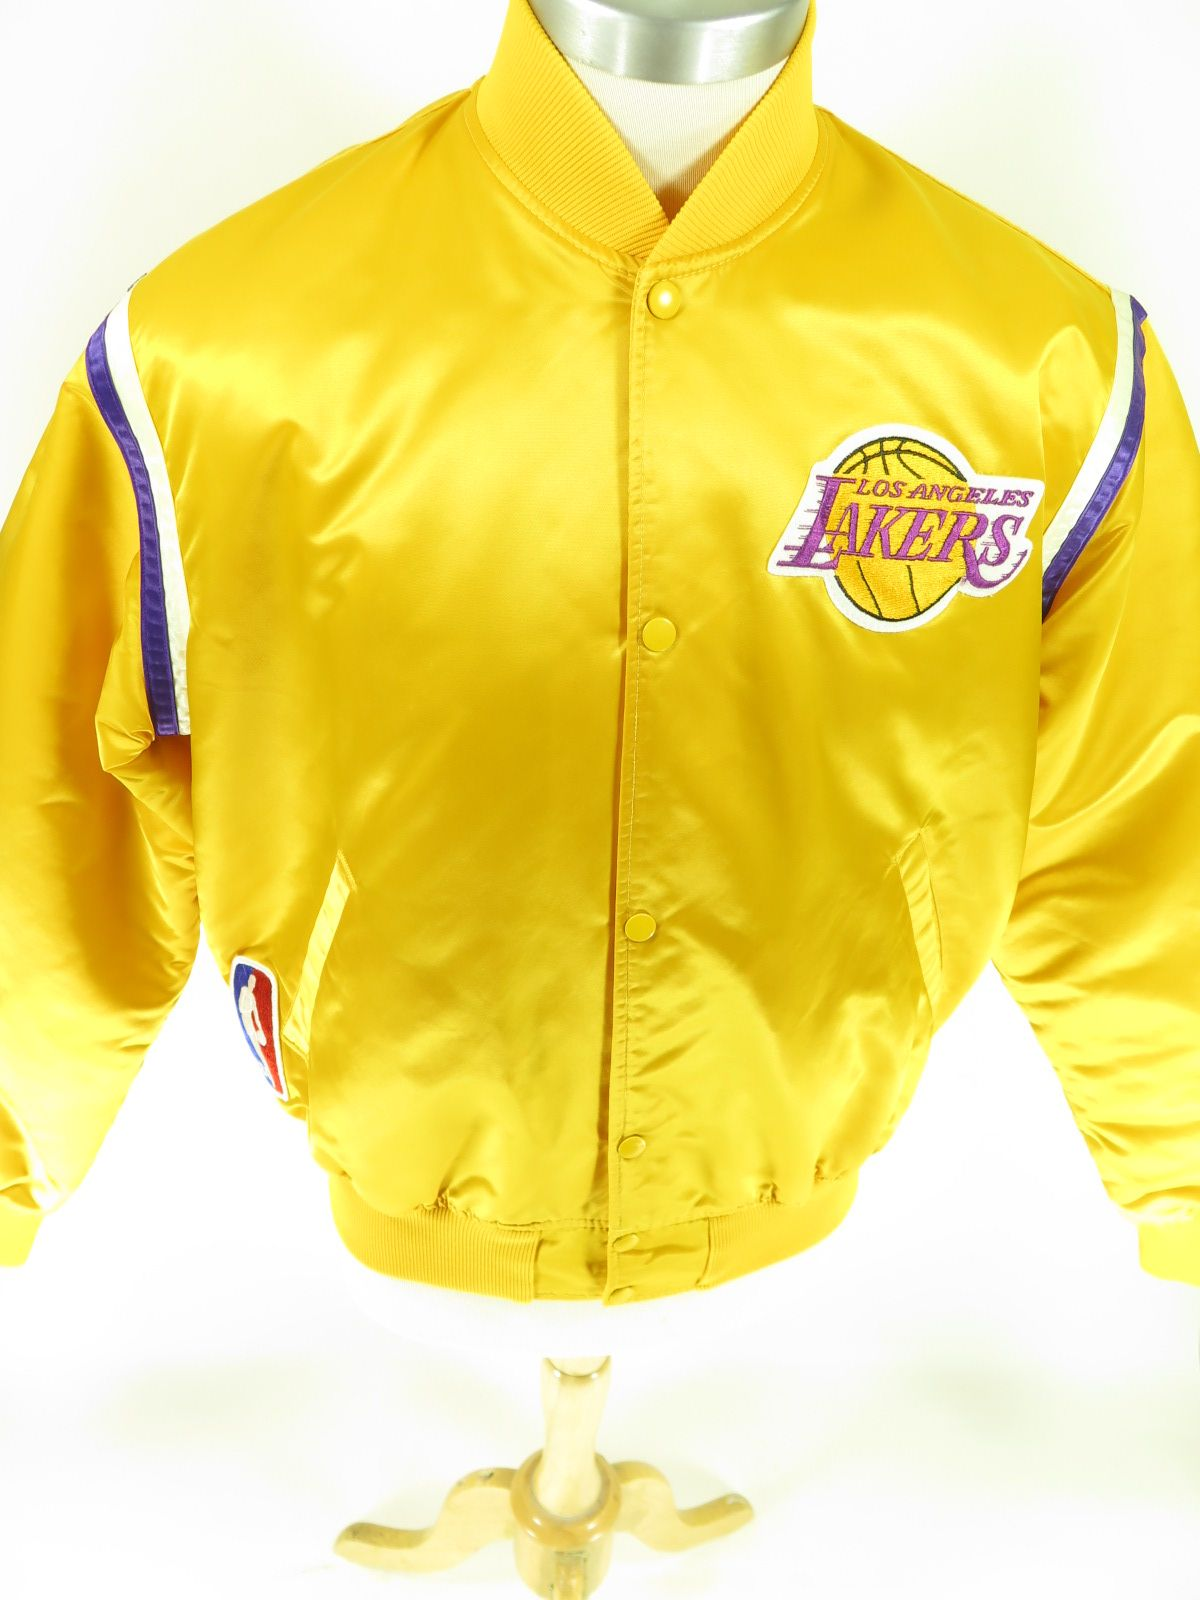 Vintage 80s Las Angeles Lakers Starter Satin Jacket Men S Xl Find More Men S And Women S Authentic Vintage Clothing At The Cl Nba Jacket Satin Jackets Jackets